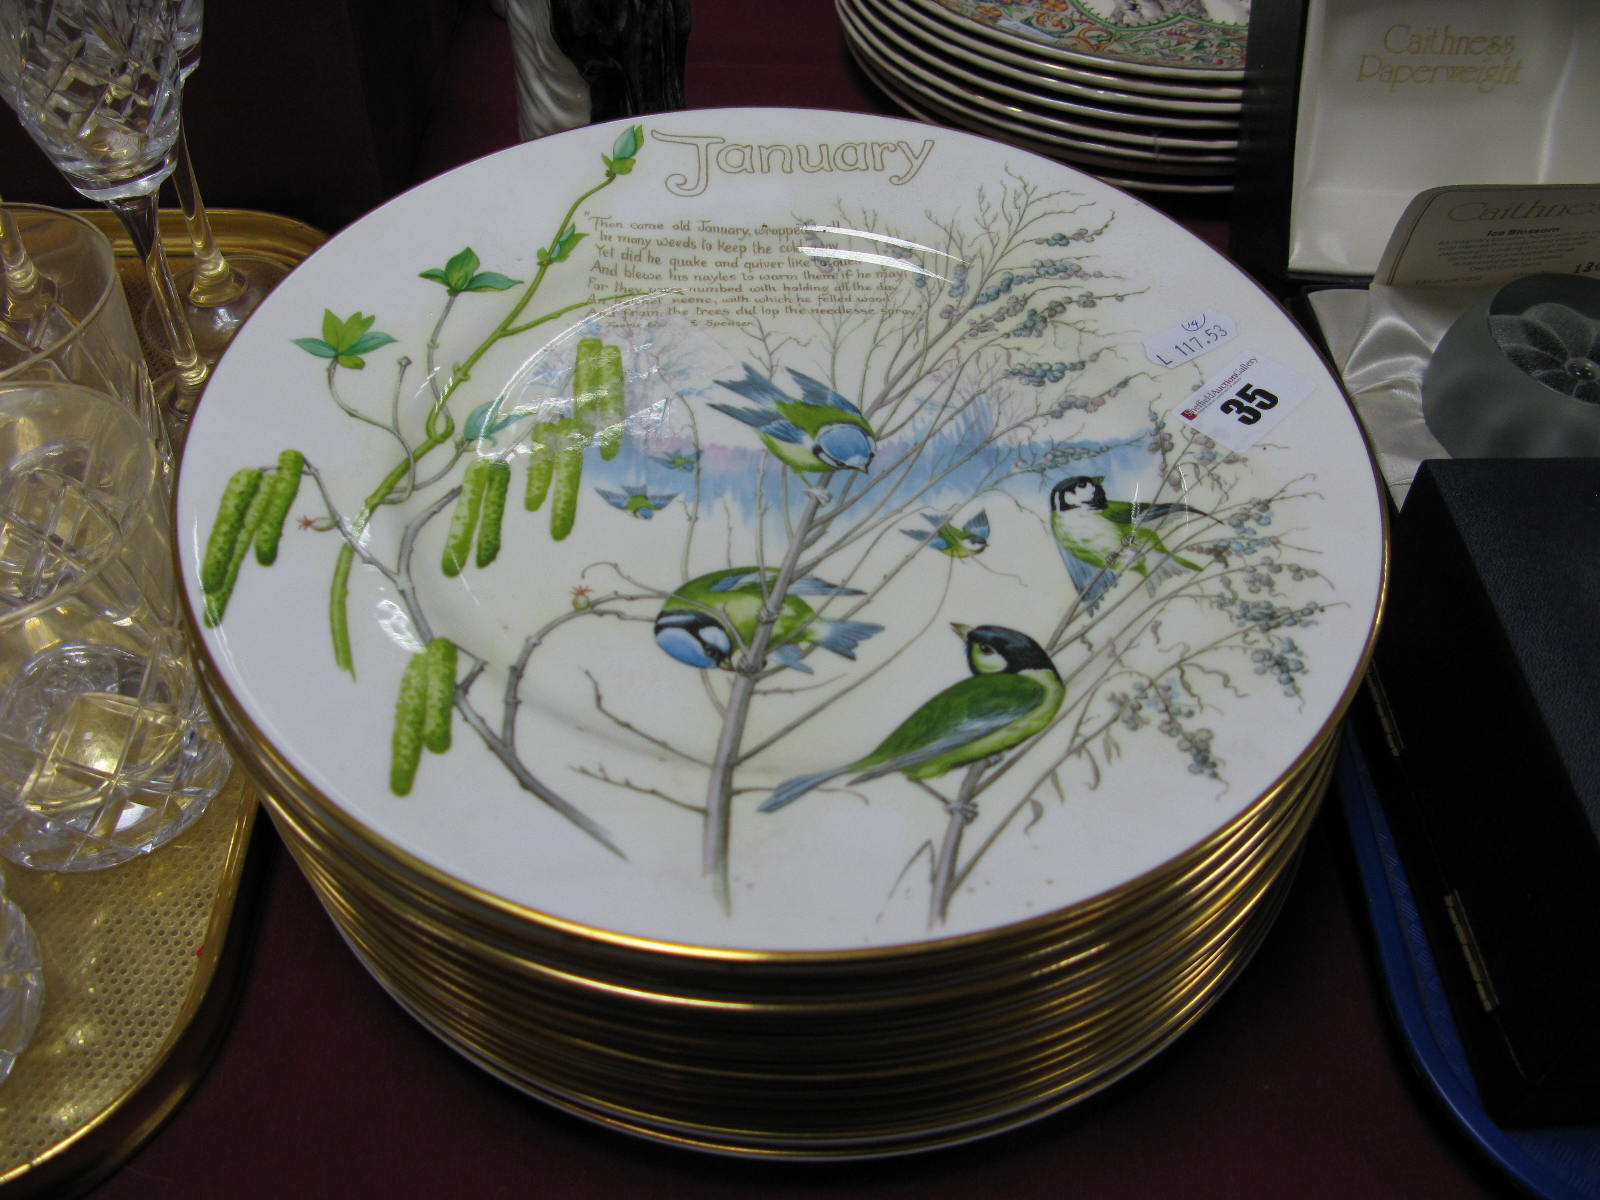 Lot 35 - A Set of Twelve Caverswall China Plates From The Months of The Year Collection, from The Country